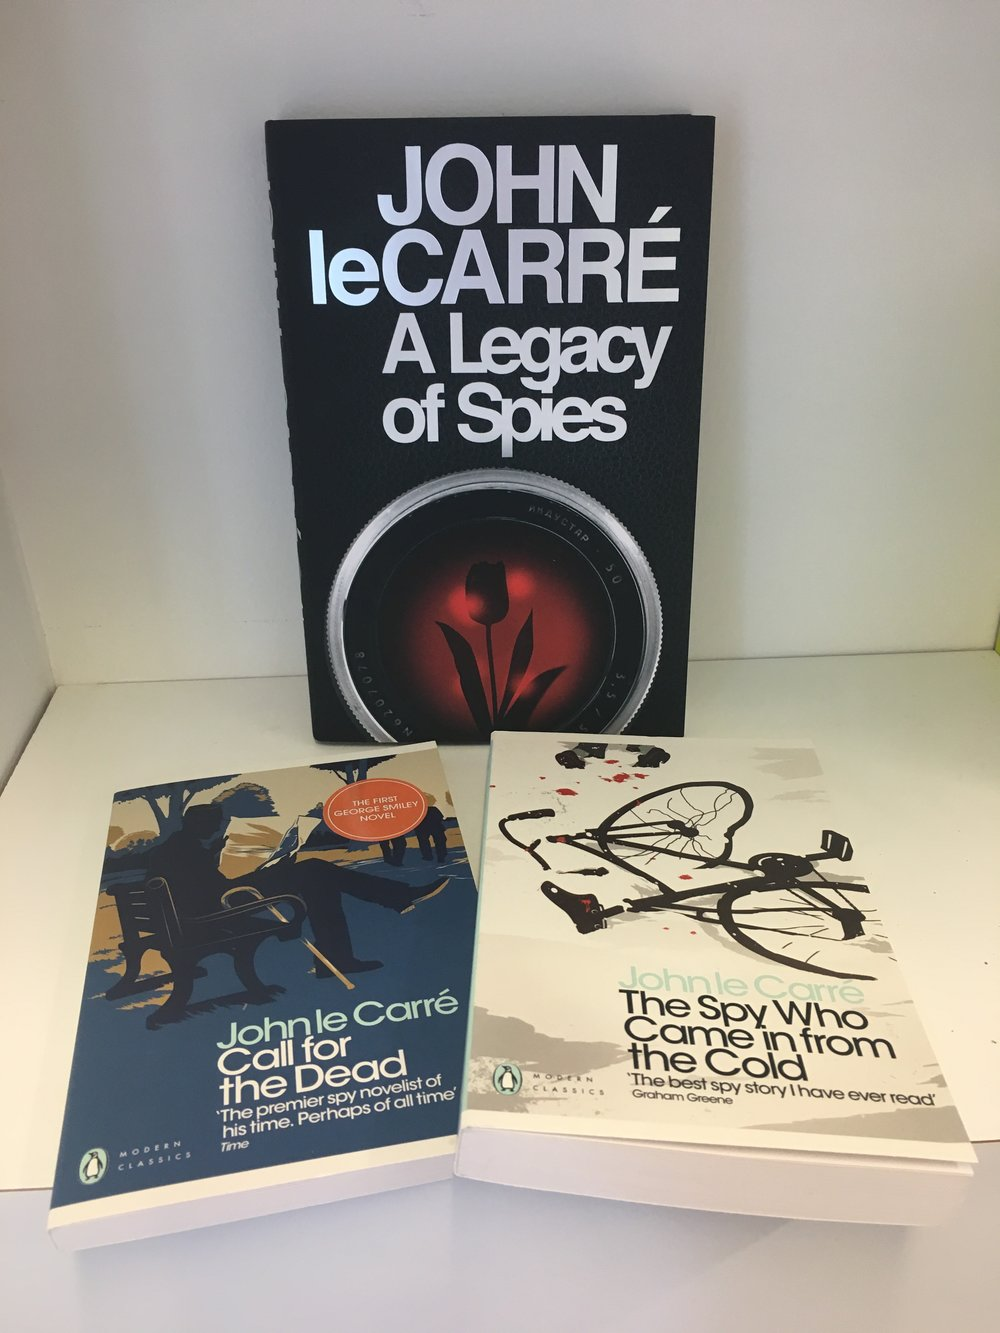 John le carre books.jpg